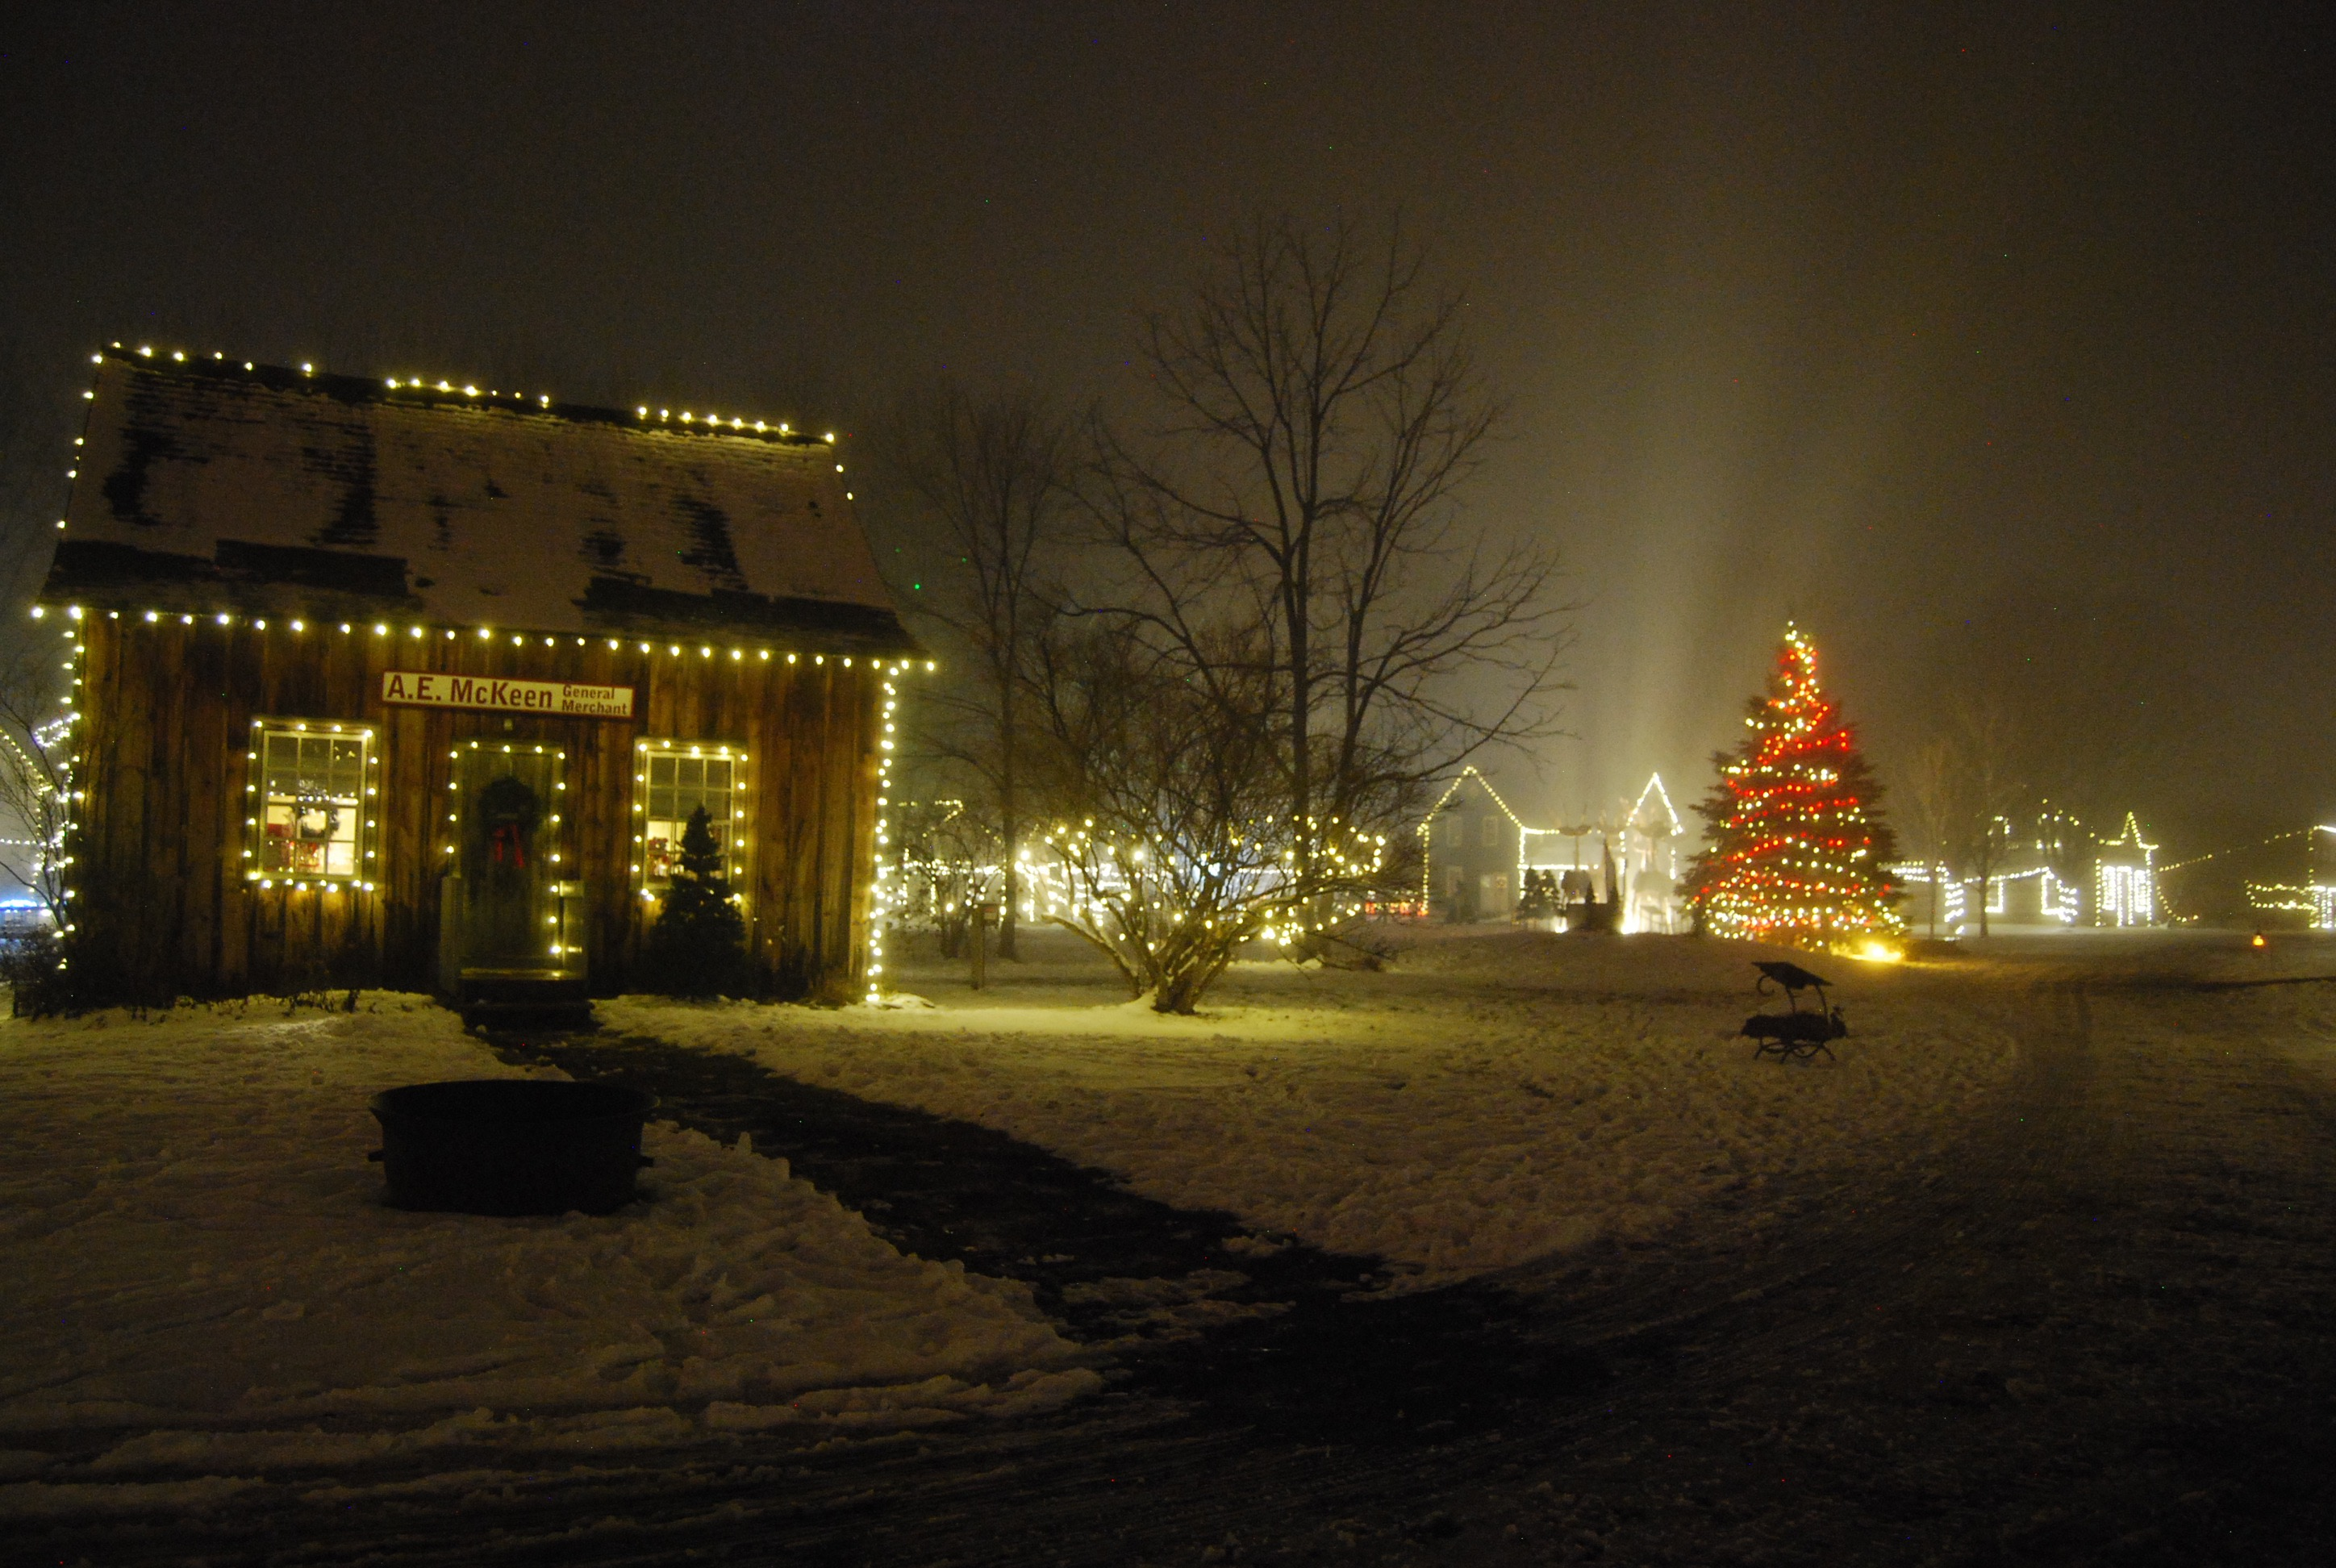 White Lights A Horse Drawn Wagon Carollers Singing And Telegraph Messages To Santa Are Just Some Of What The Berland Heritage Village Museum